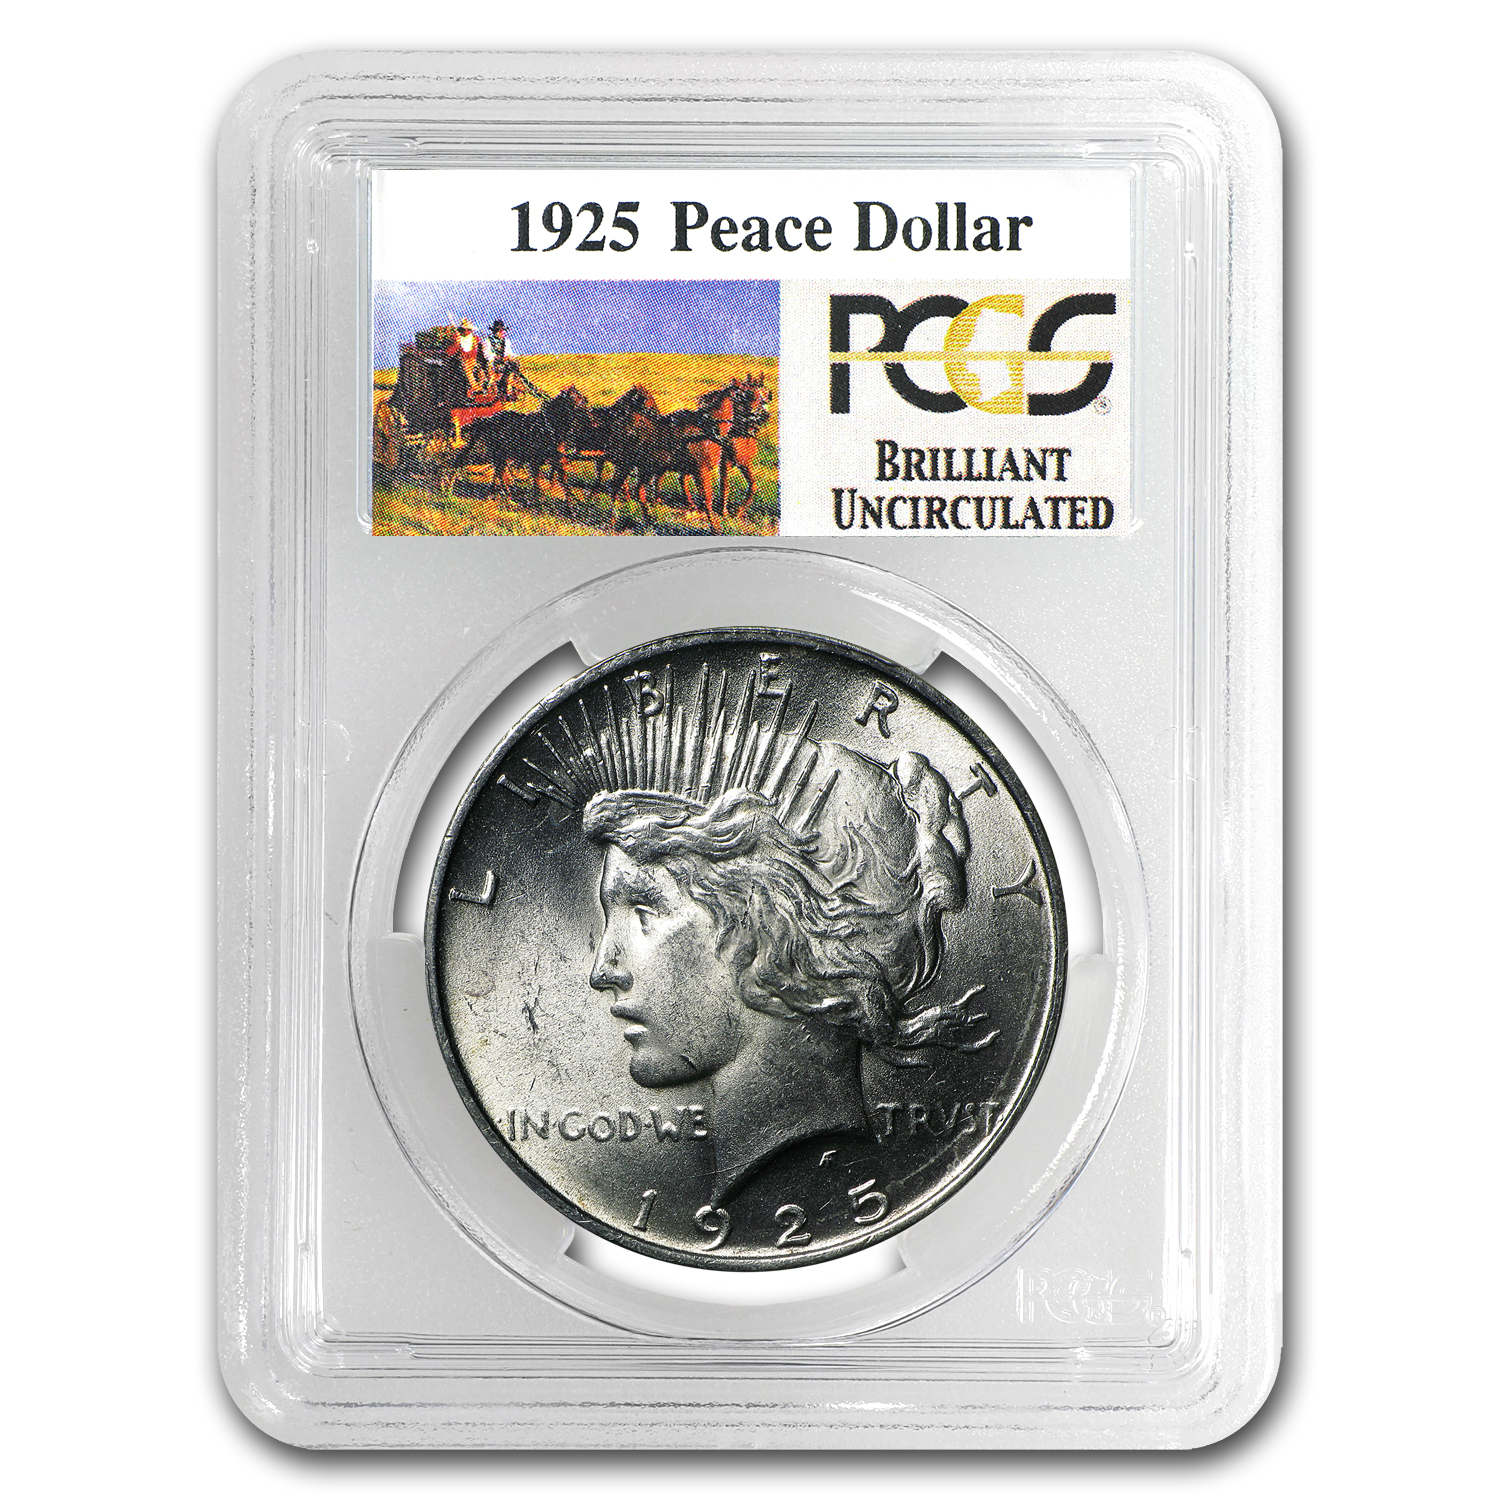 1925 Brilliant Uncirculated PCGS Stage Coach Silver Dollars